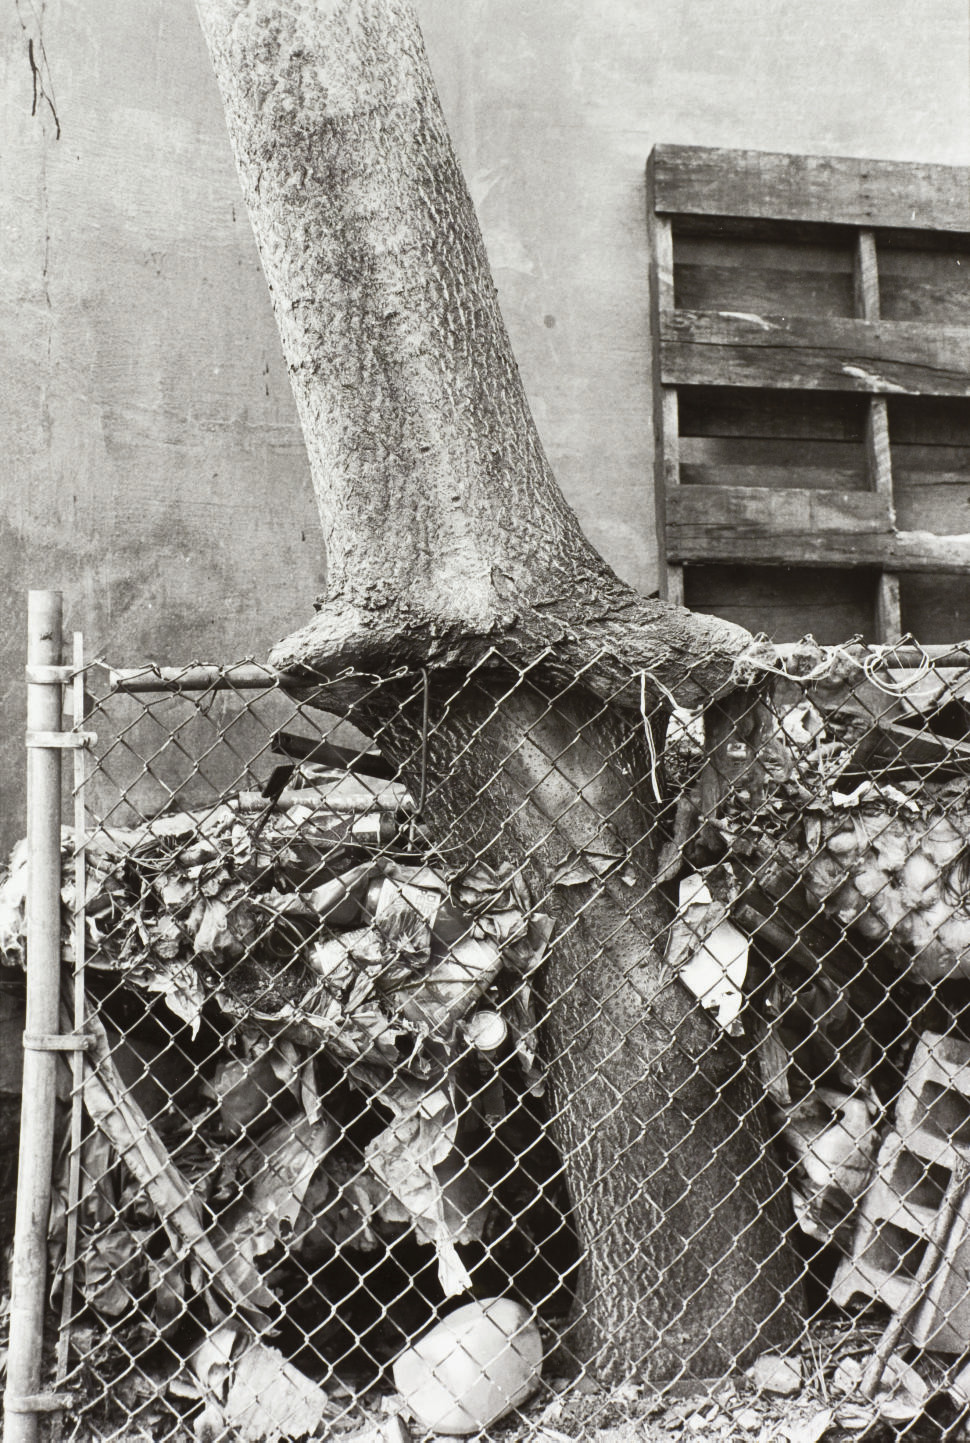 Tree + Fence out my back window, 1998